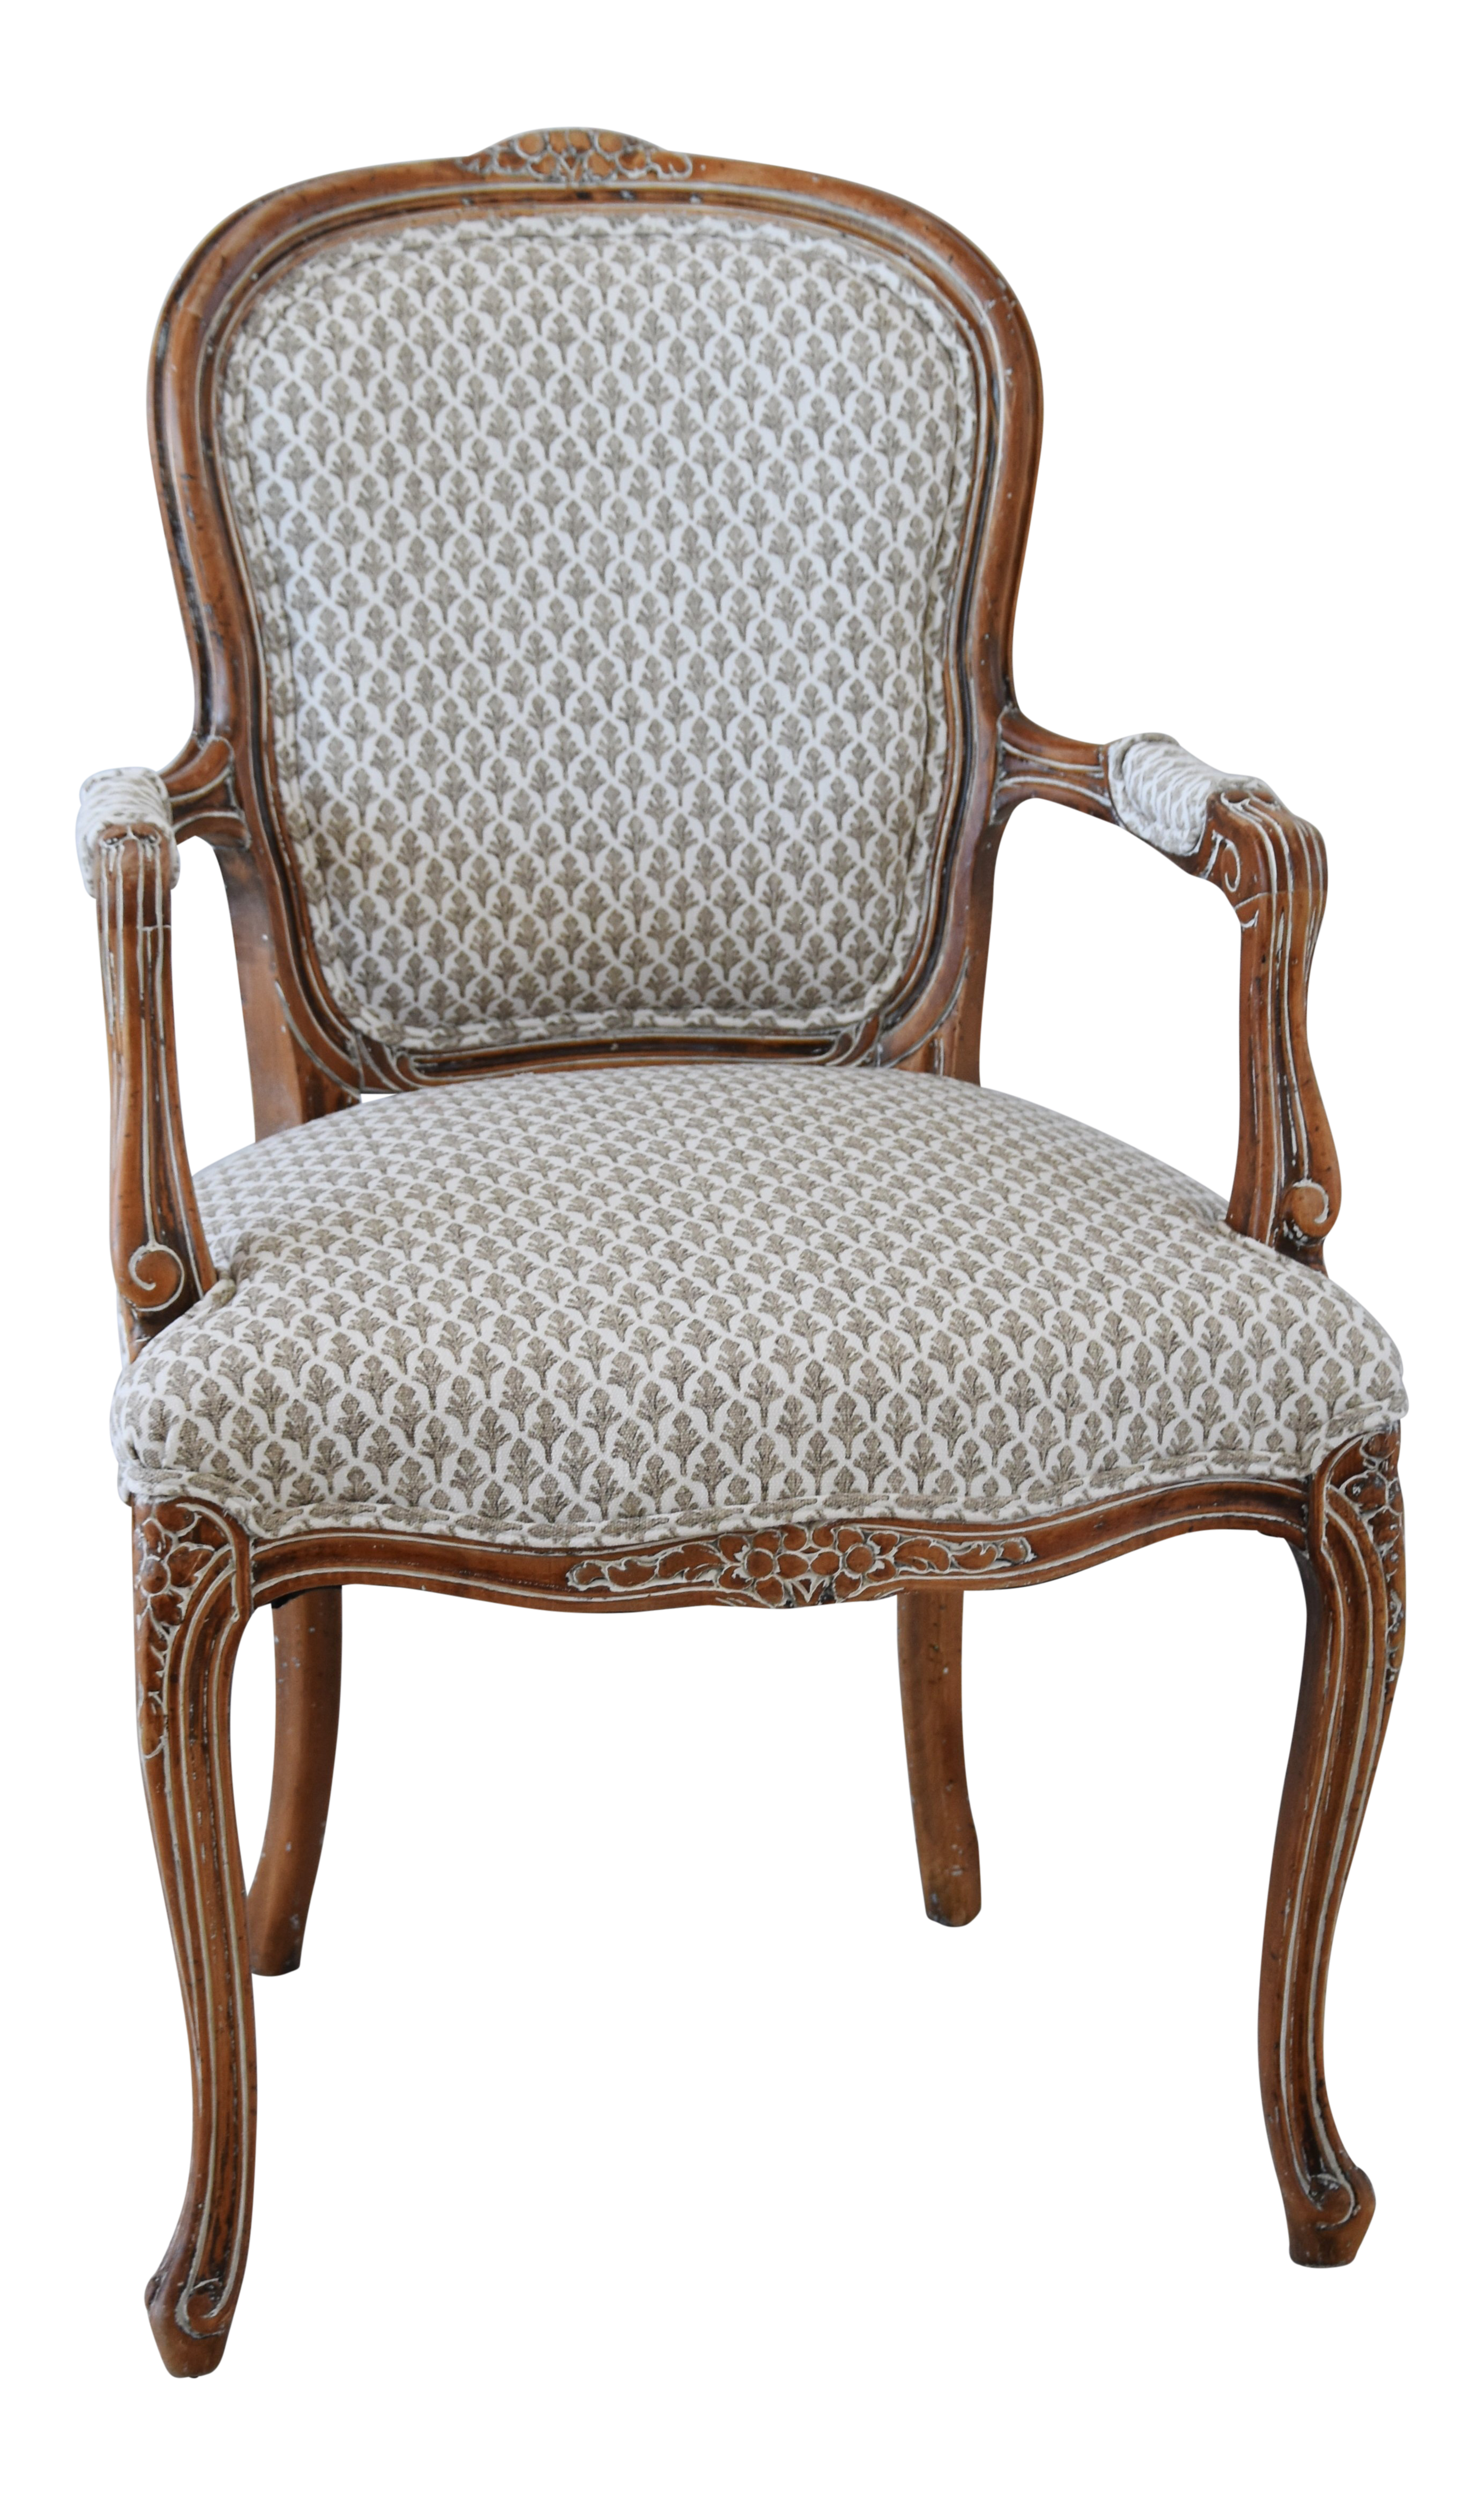 1950s Carved Wood Upholstered French Armchair | Chairish